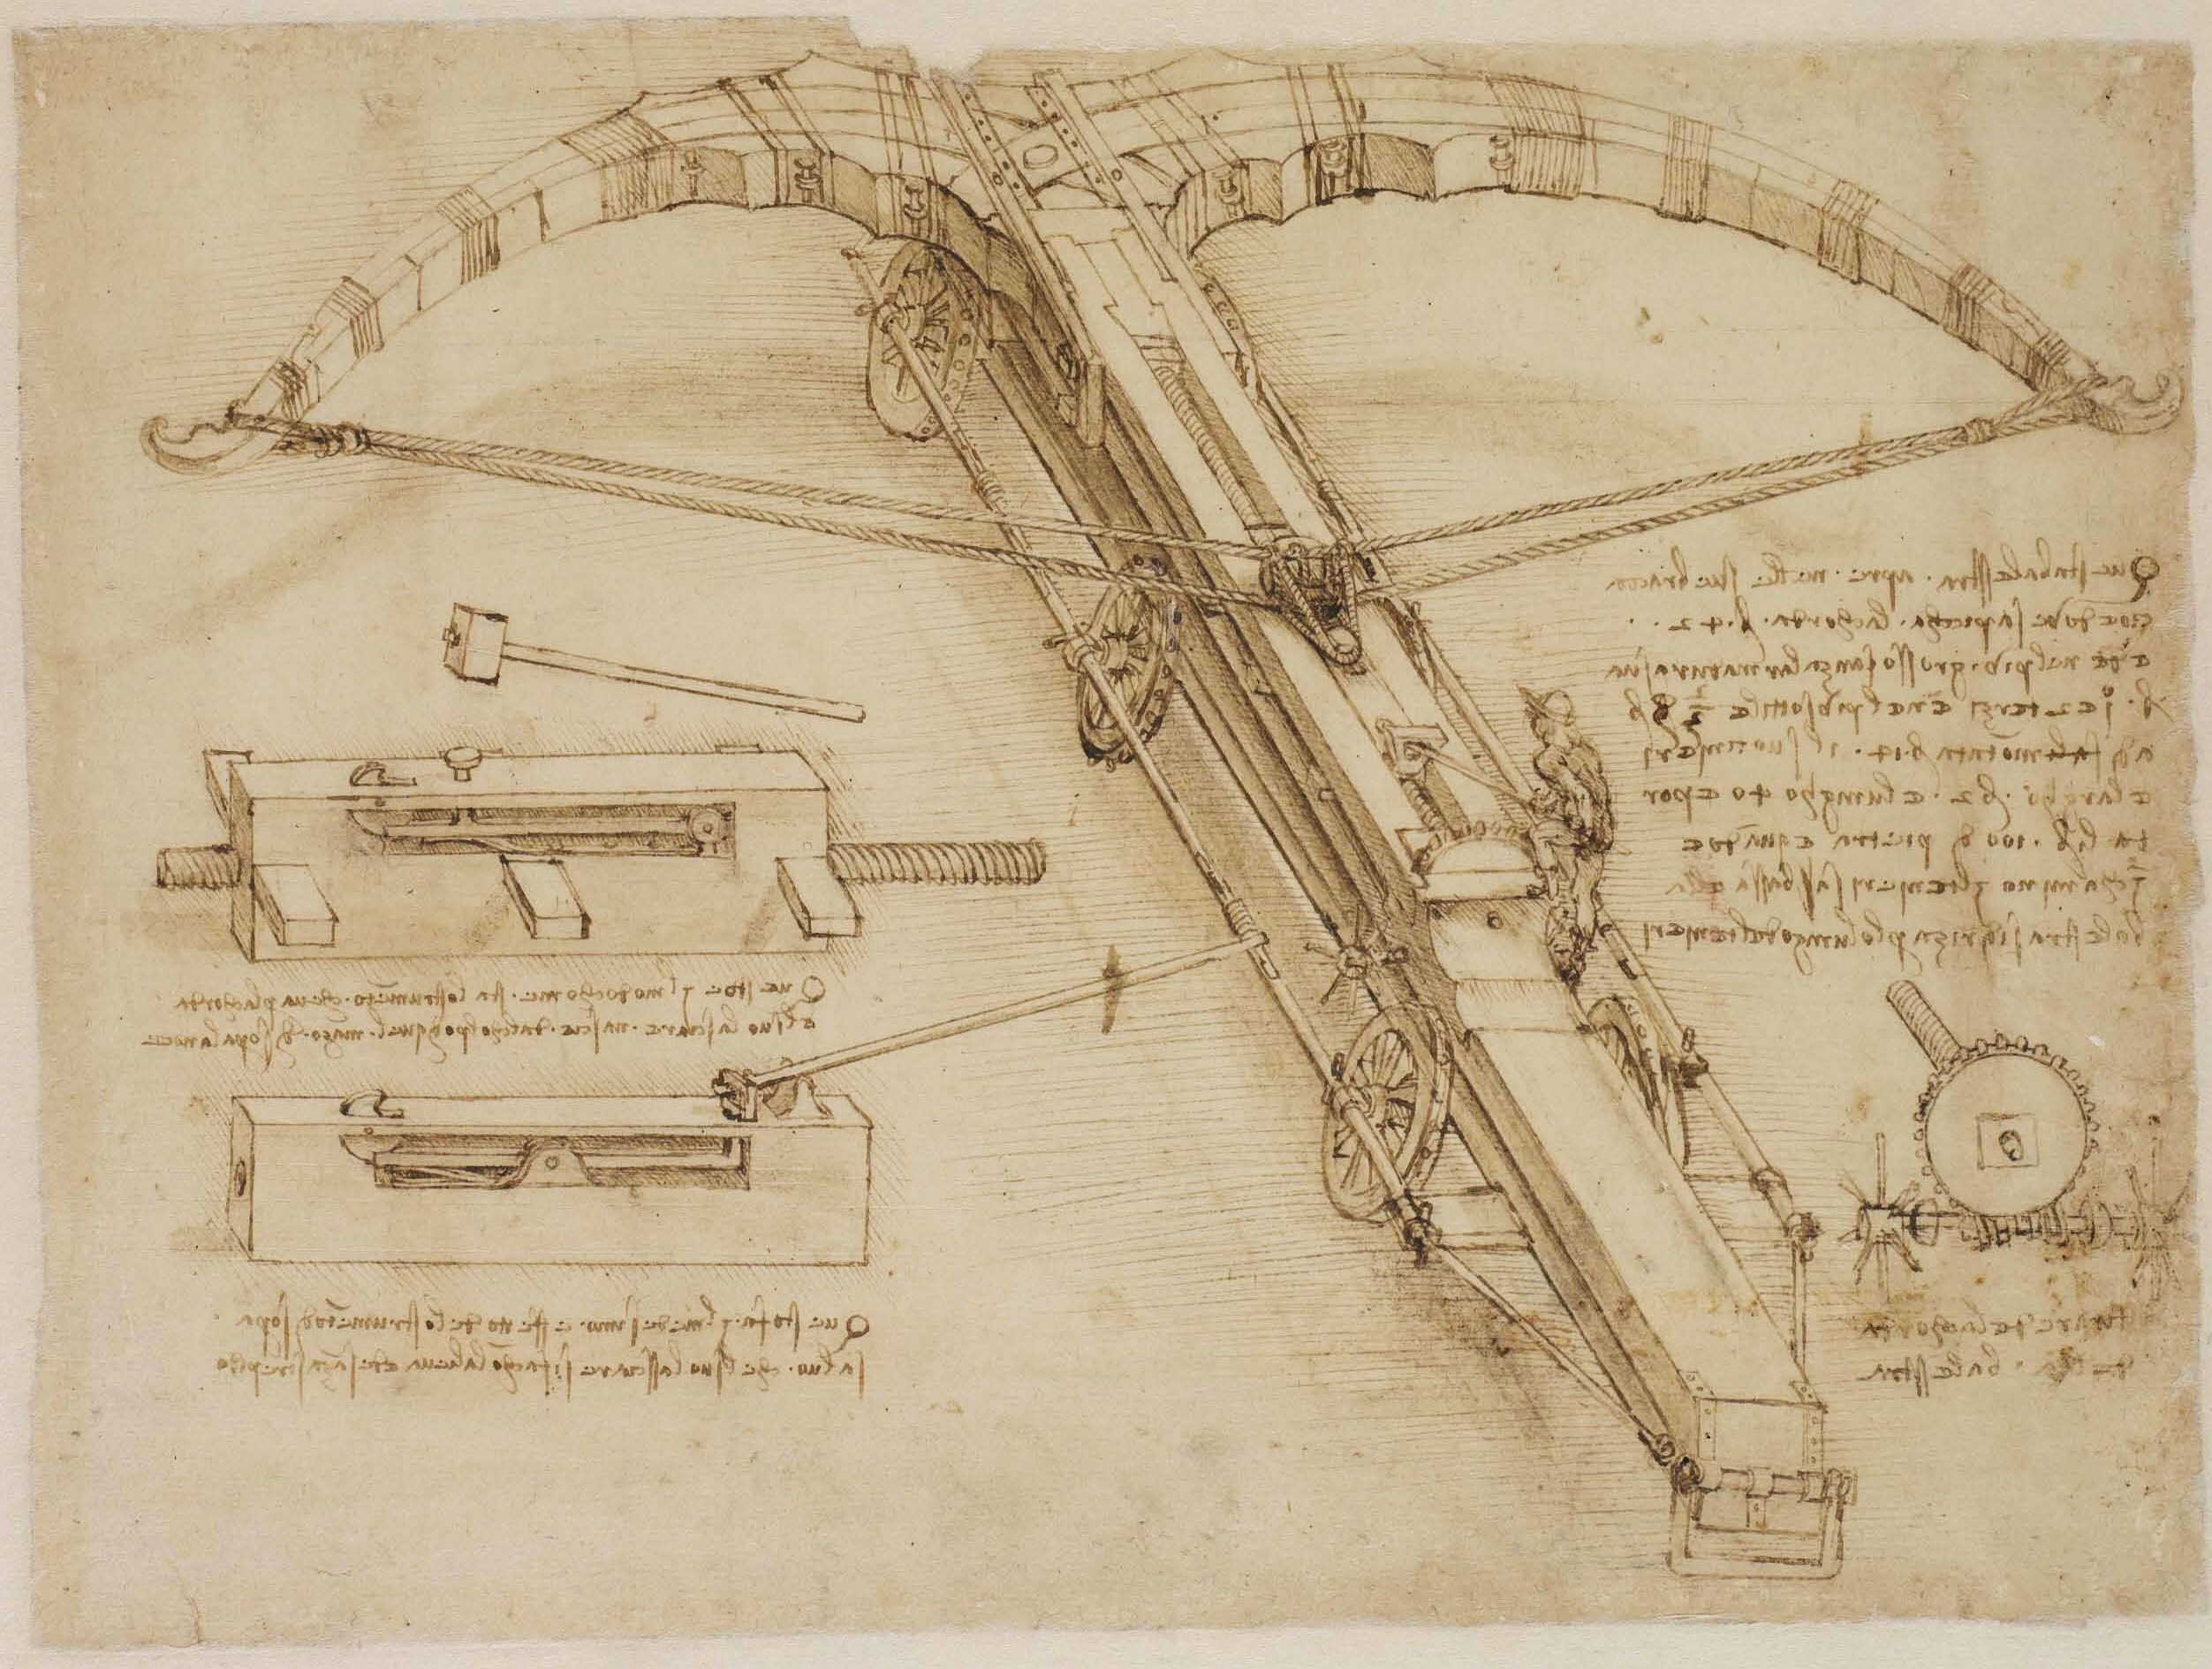 Giant Crossbow Designed By Leonardo Da Vinci In The Atlantic Codex Codice Atlantico Pinacoteca Ambrosiana Milano Resim Tablolar